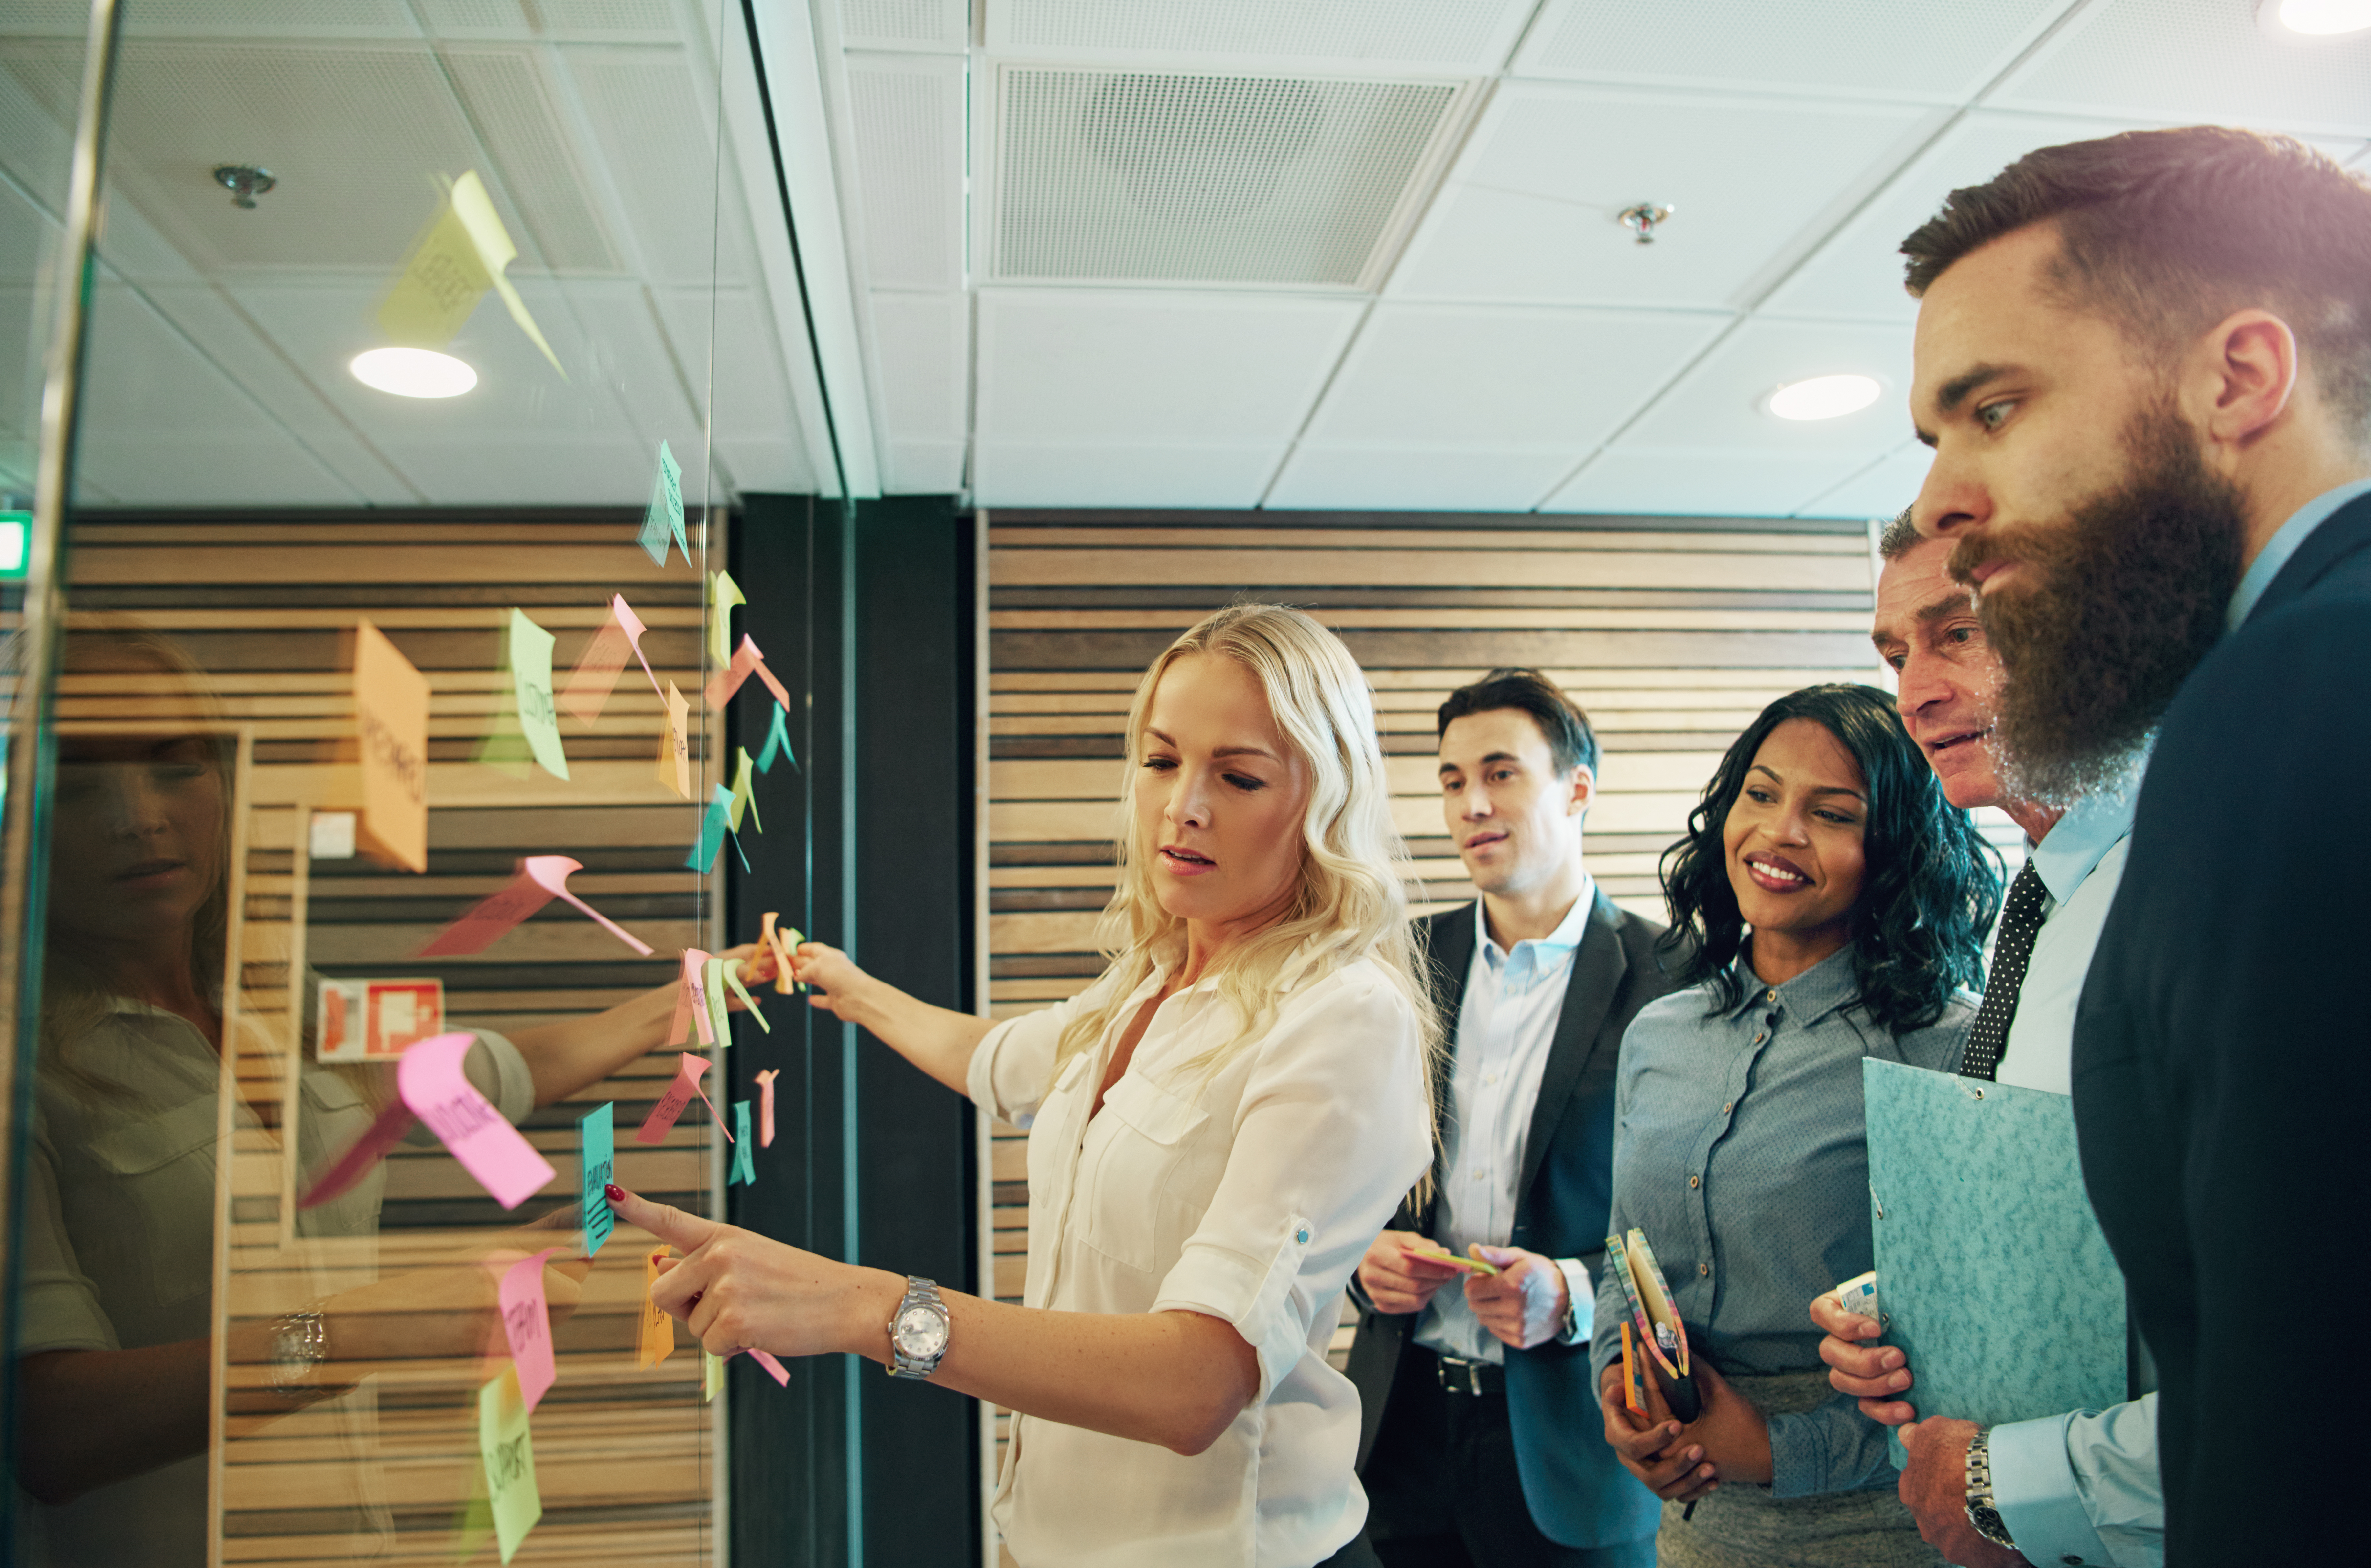 Group of people standing around a glass wall with stickies on it